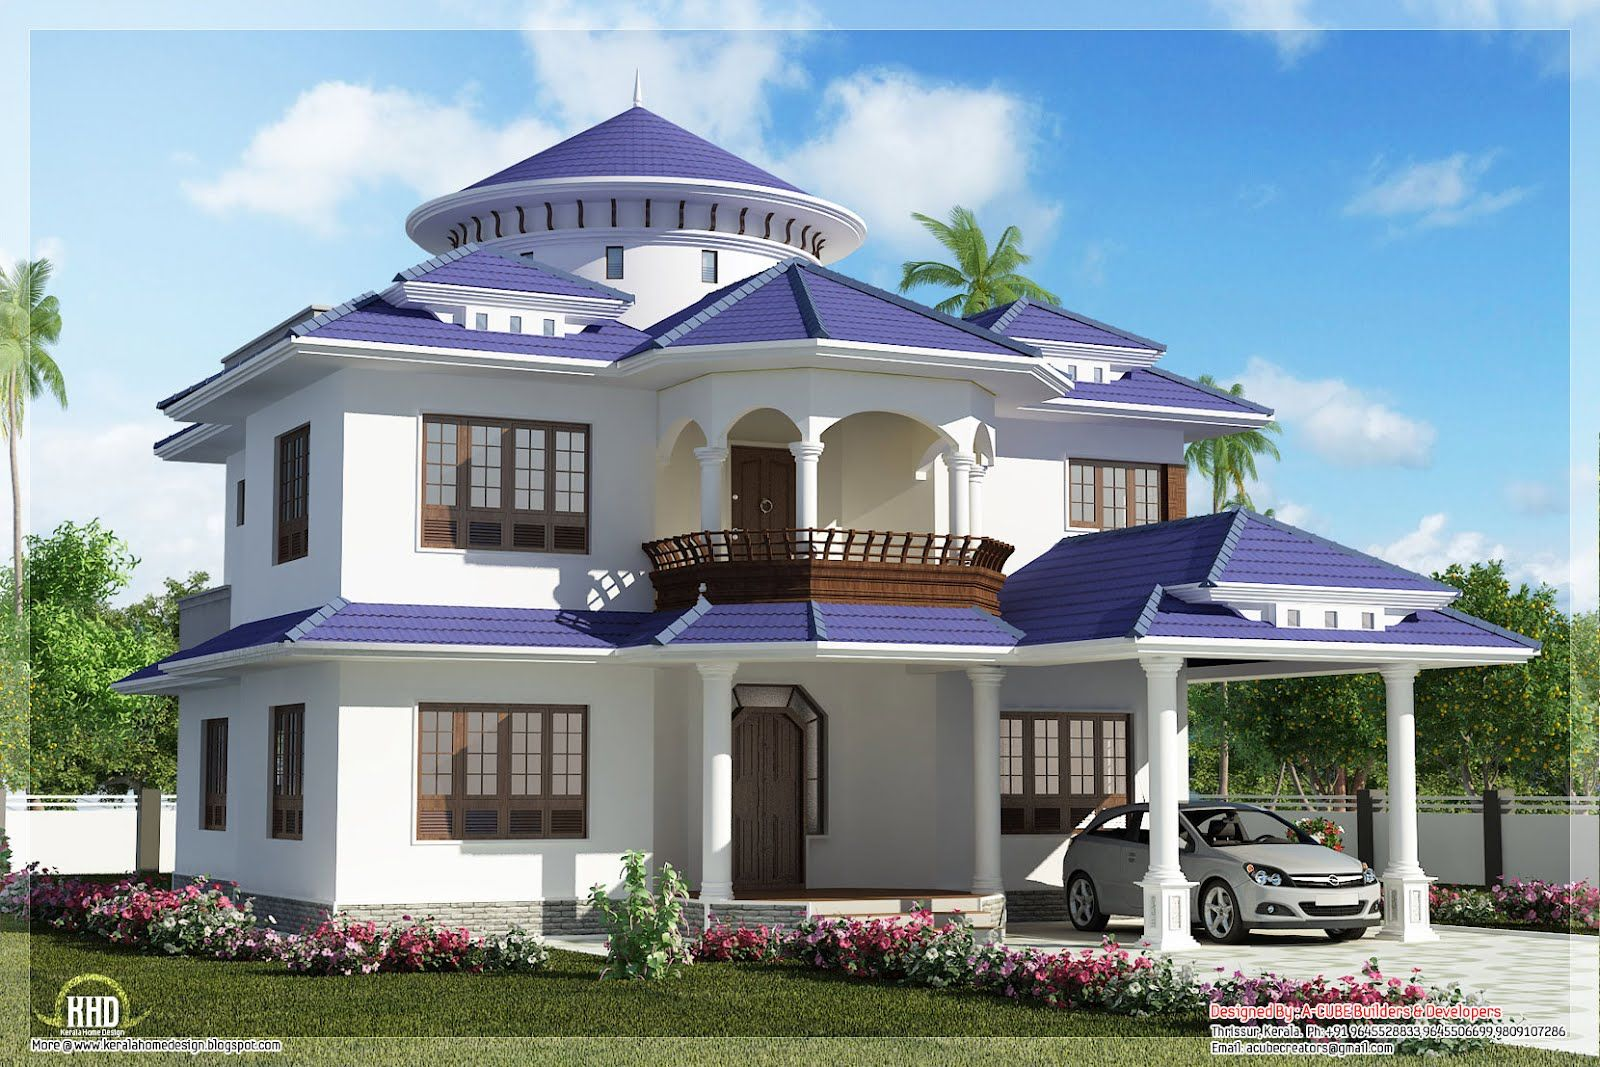 Home Design Photos kerala home design, home and house, home elevation plans, 3d